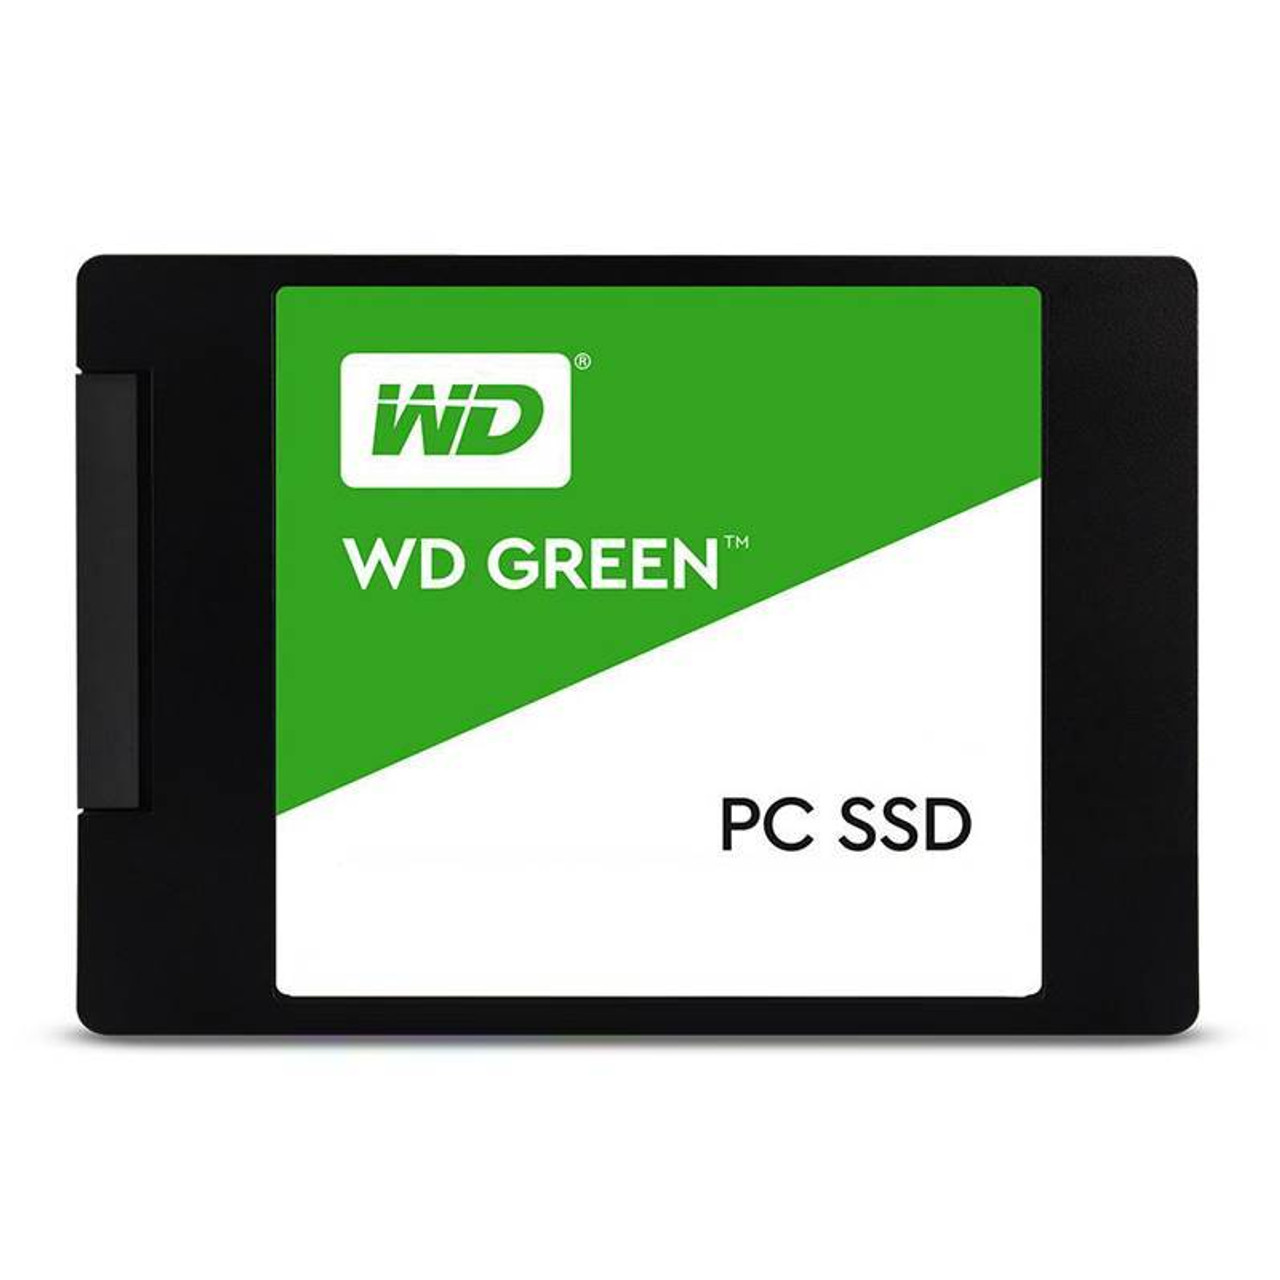 Product image for Western Digital WD Green 240GB SATA III 3D NAND SSD | CX Computer Superstore